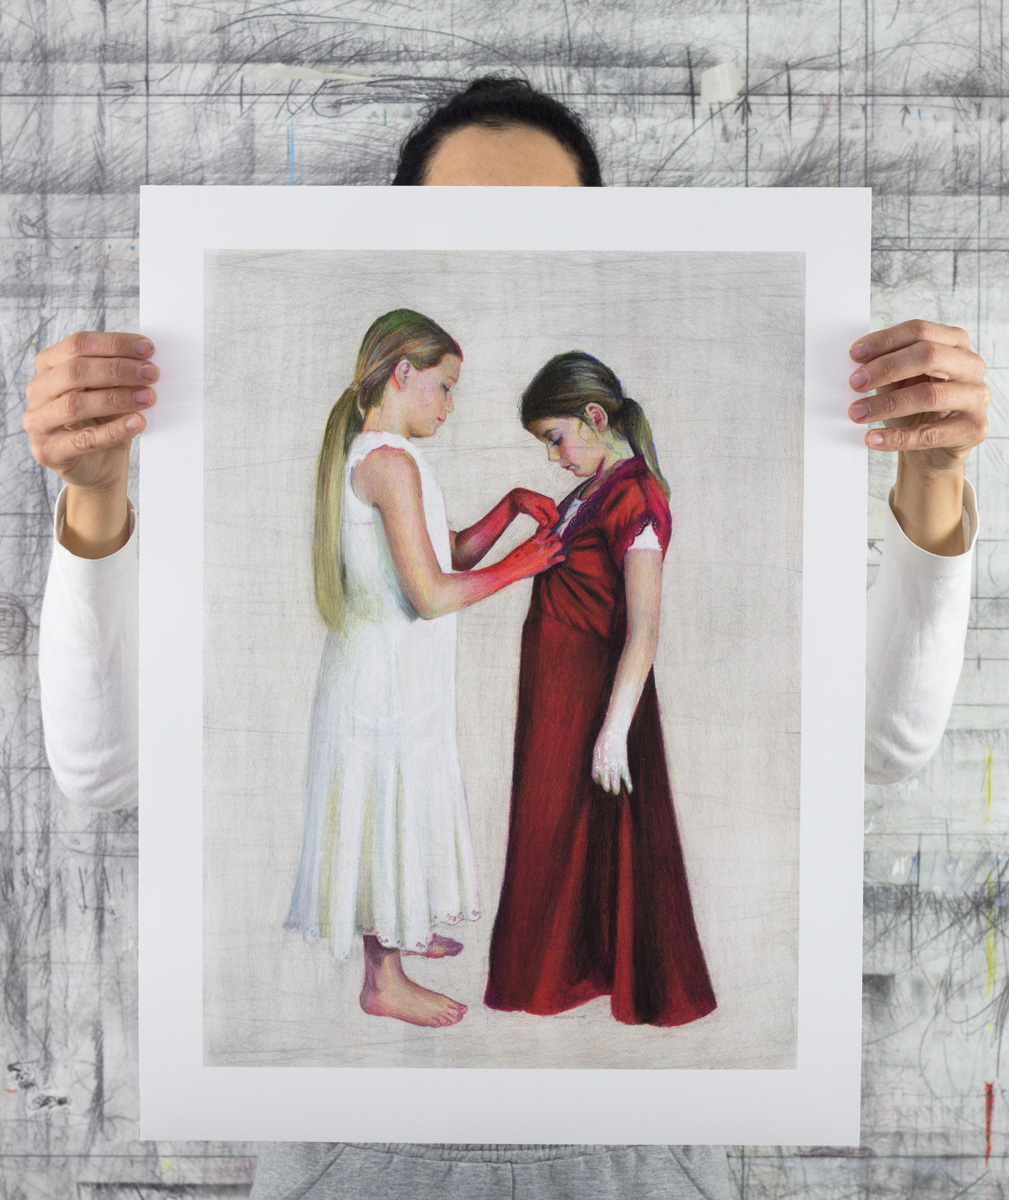 An image of contemporary artist Angelika Vaxevanidou holding a limited edition fine art print